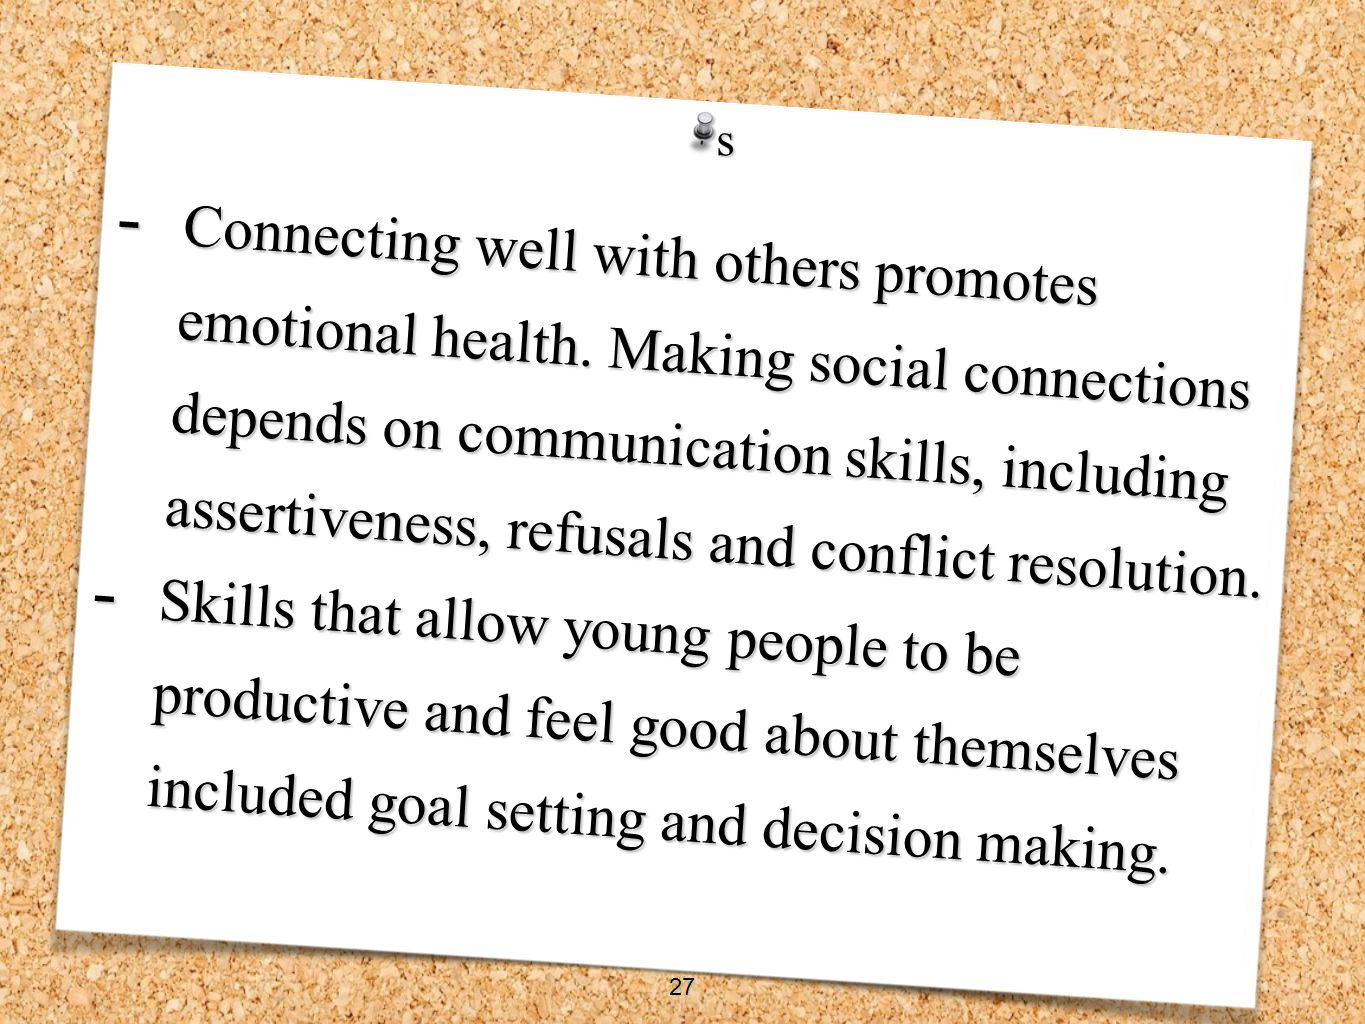 Connecting well with others promotes emotional health